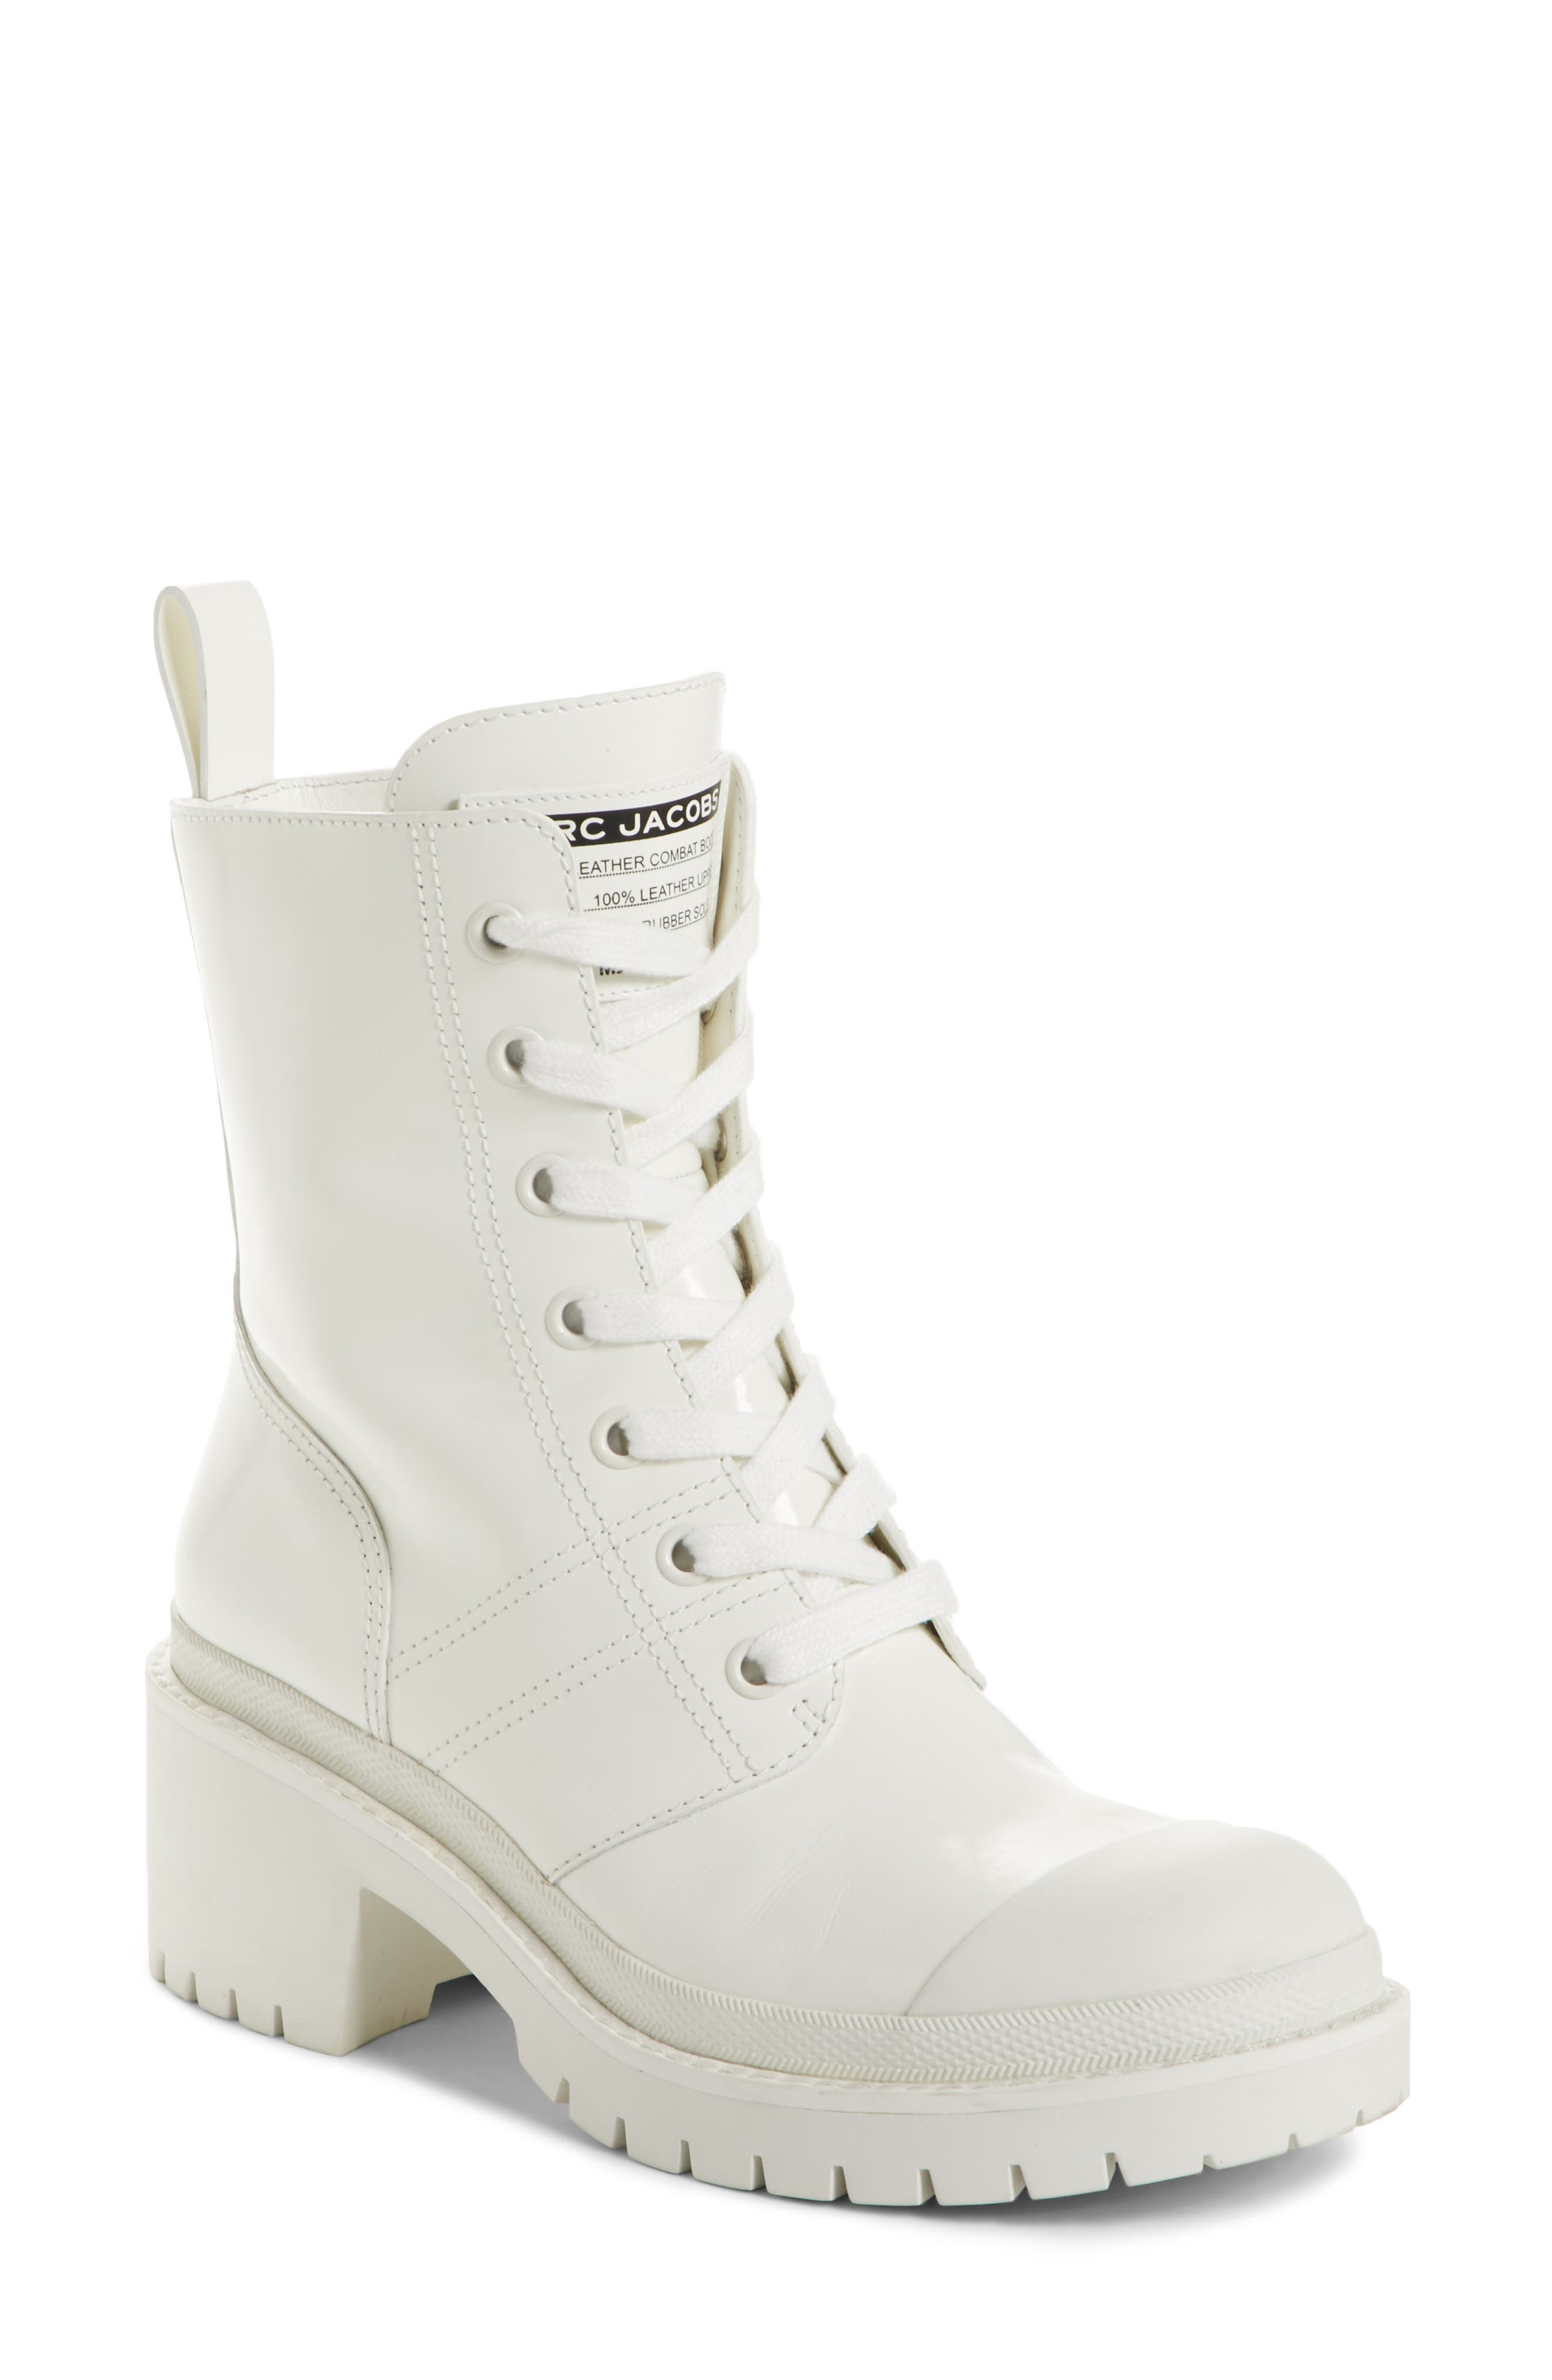 Bristol Lace-Up Boot,                         Main,                         color, White